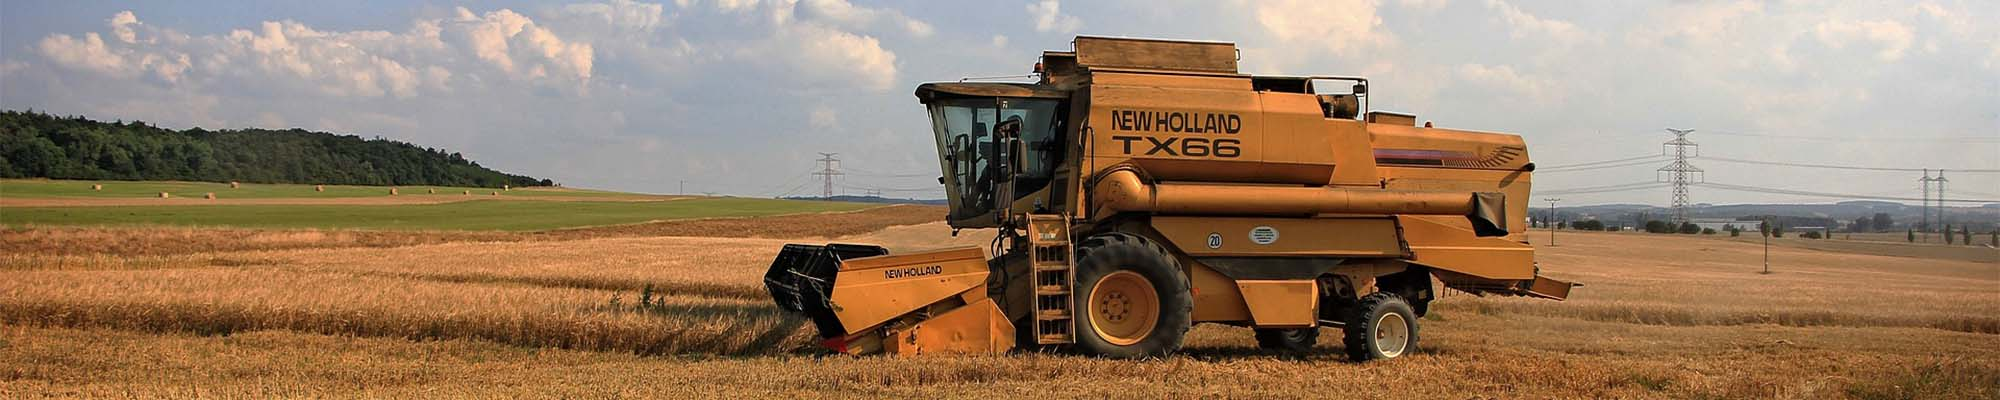 A Combine harvester working in a field